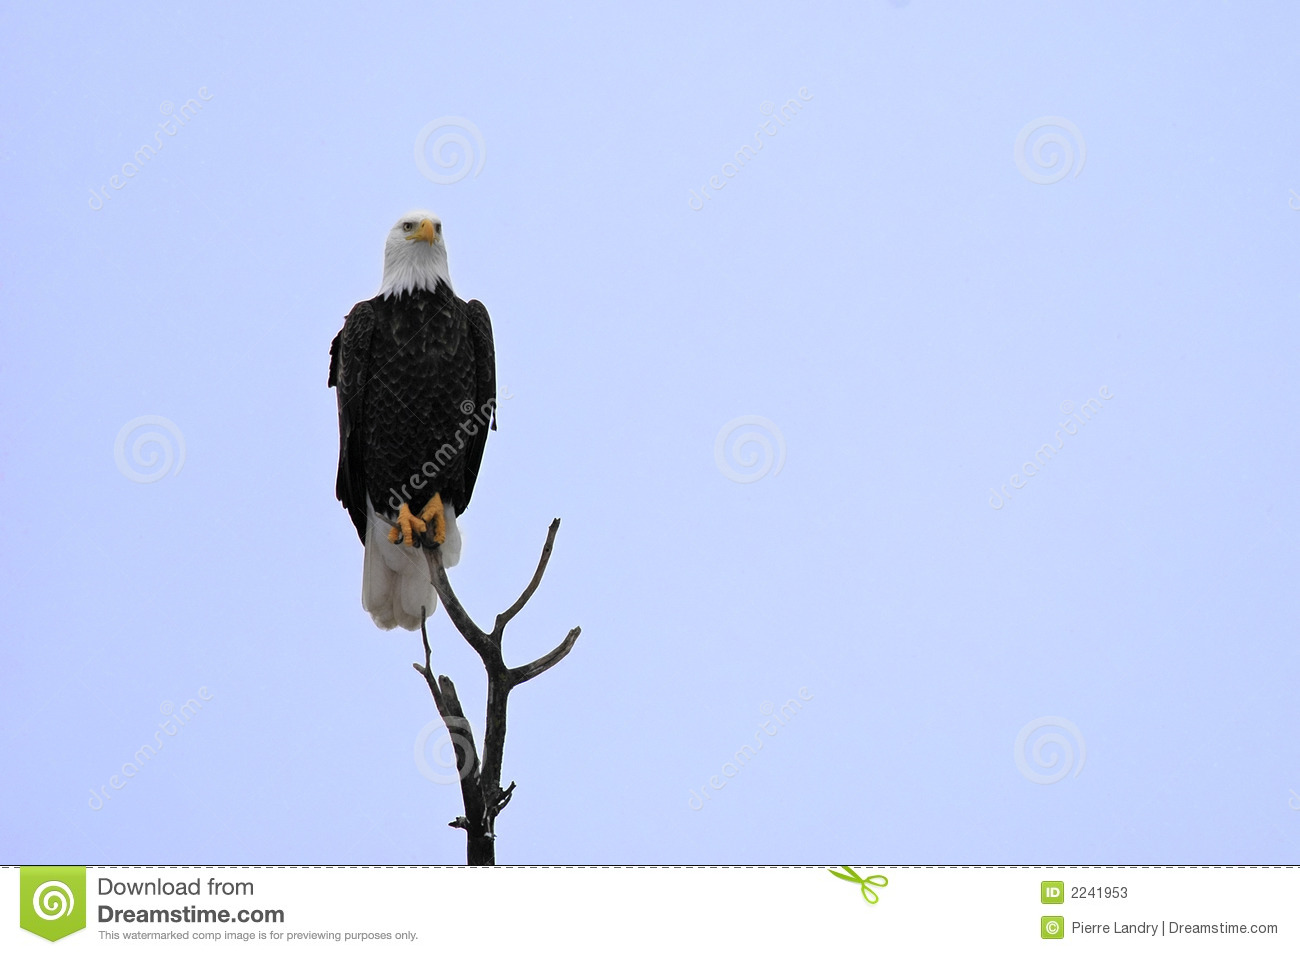 Bald Eagle perched high